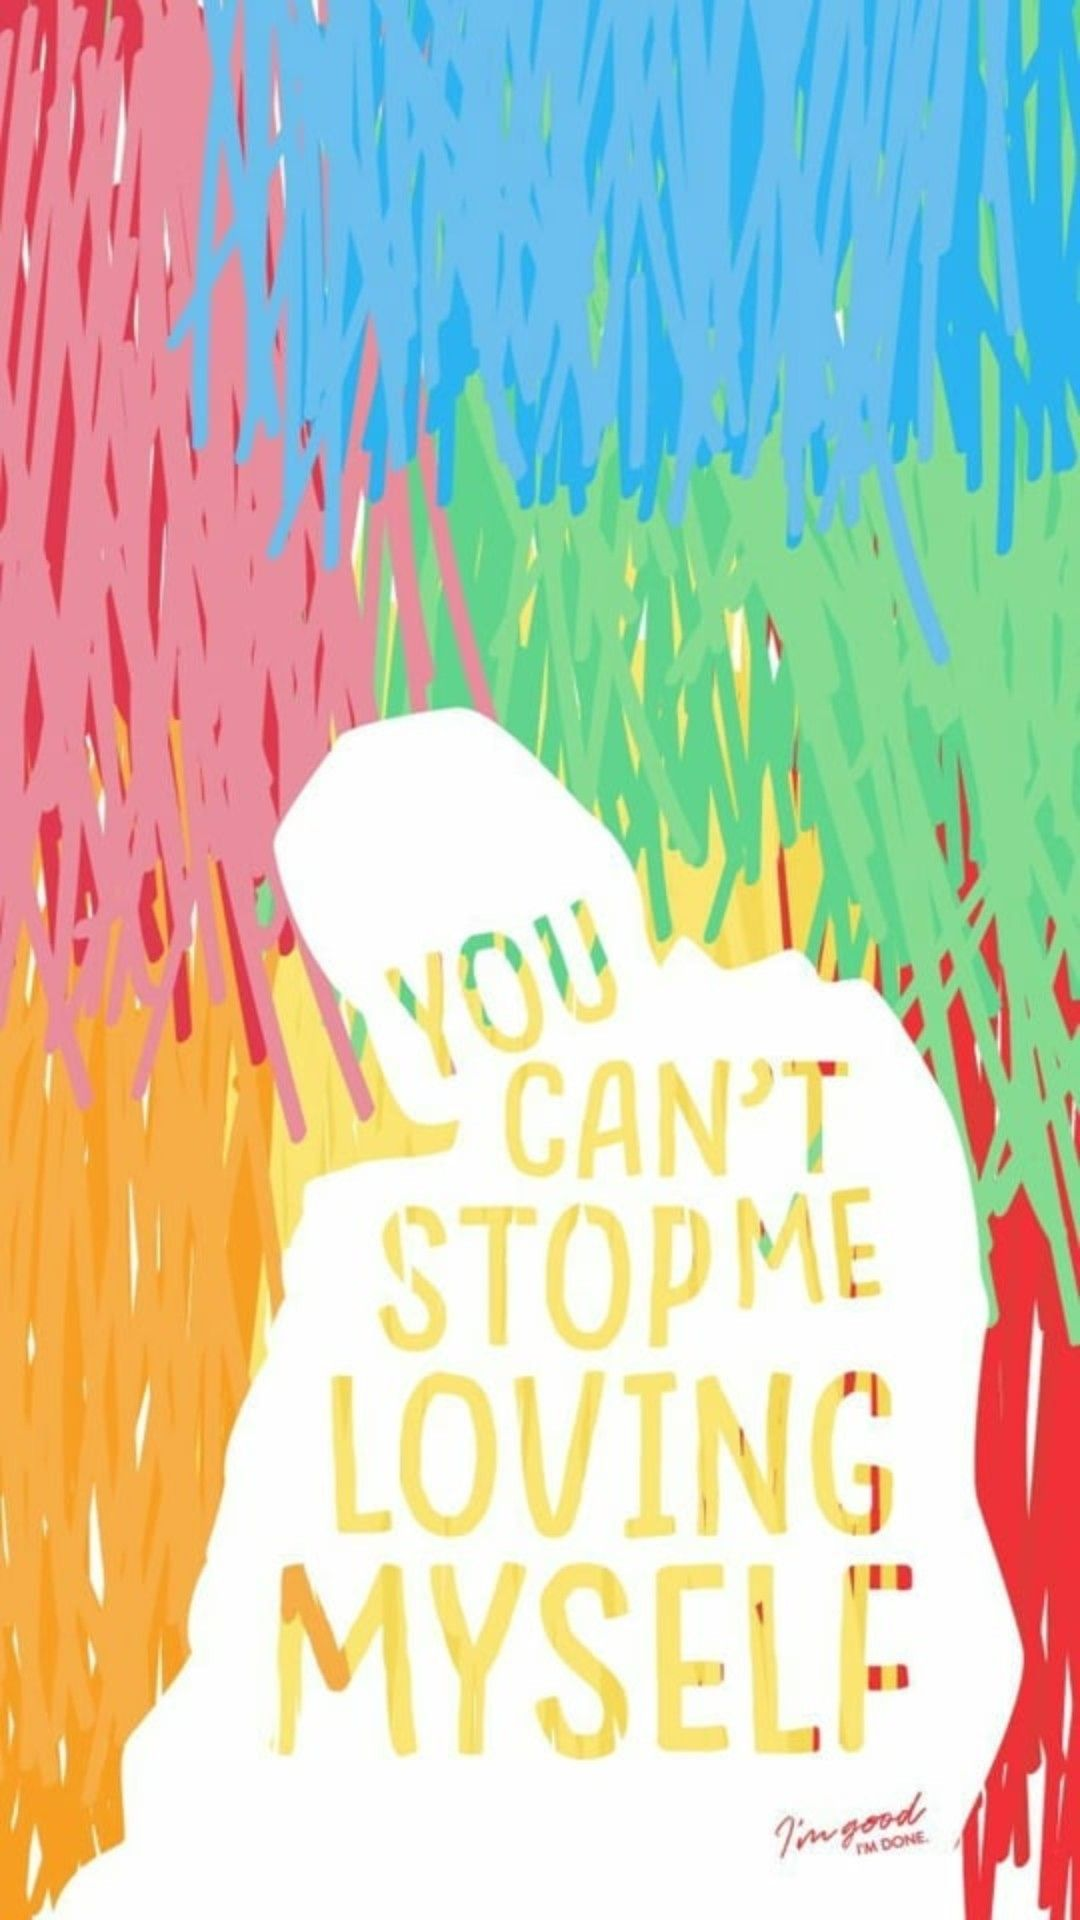 You Can T Stop Me Loving Myself , HD Wallpaper & Backgrounds